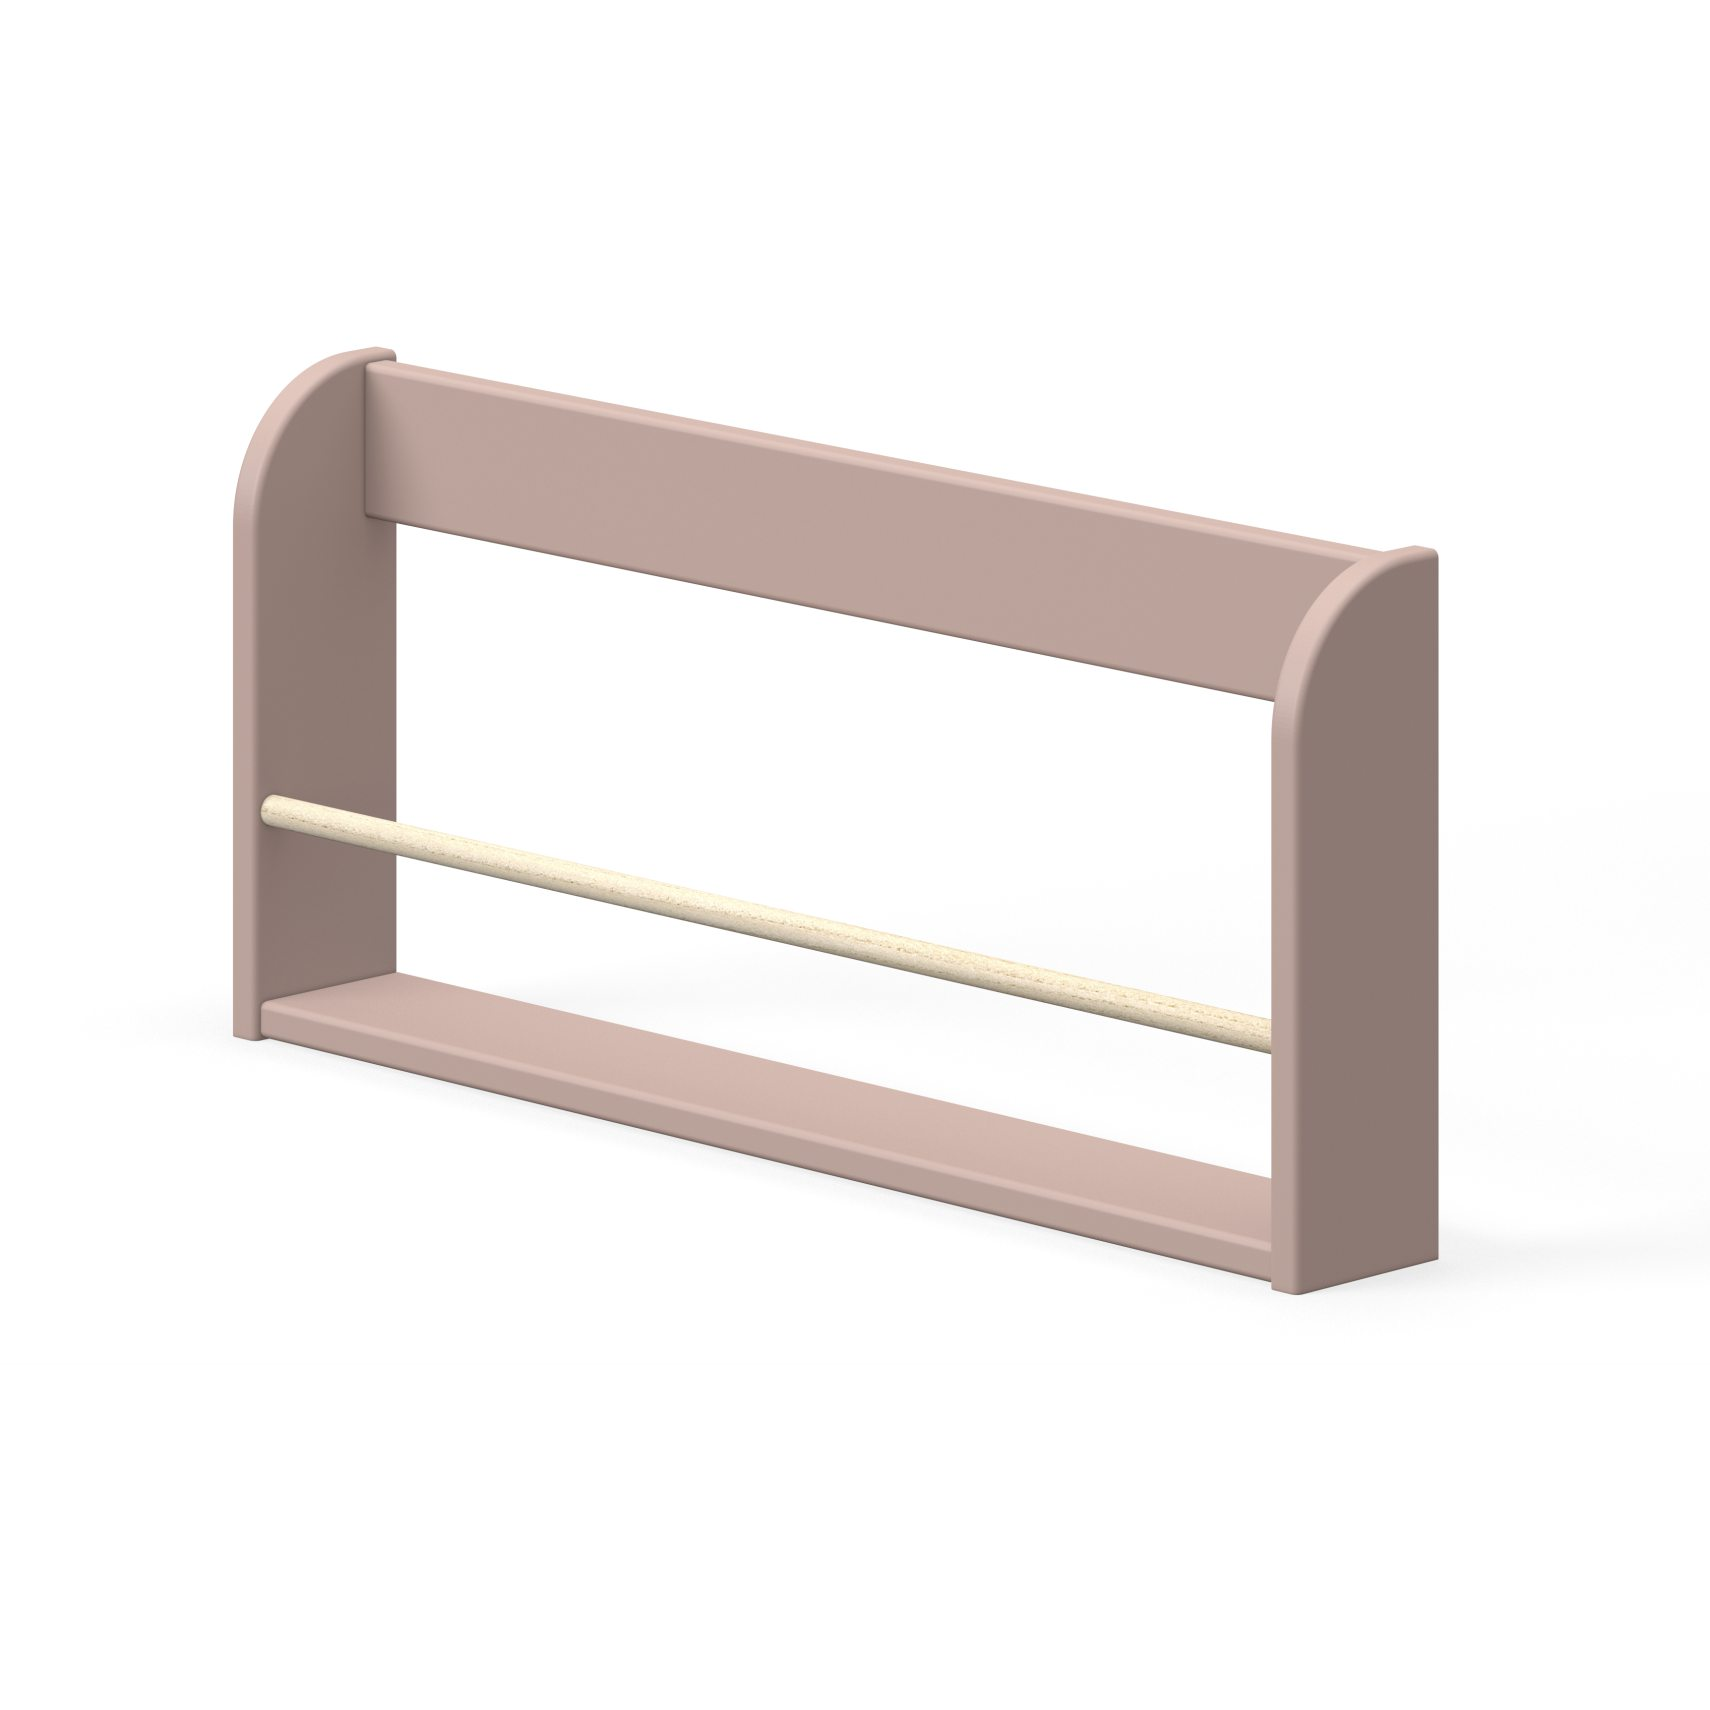 Flexa Play Boghylde - Light Rose MDF